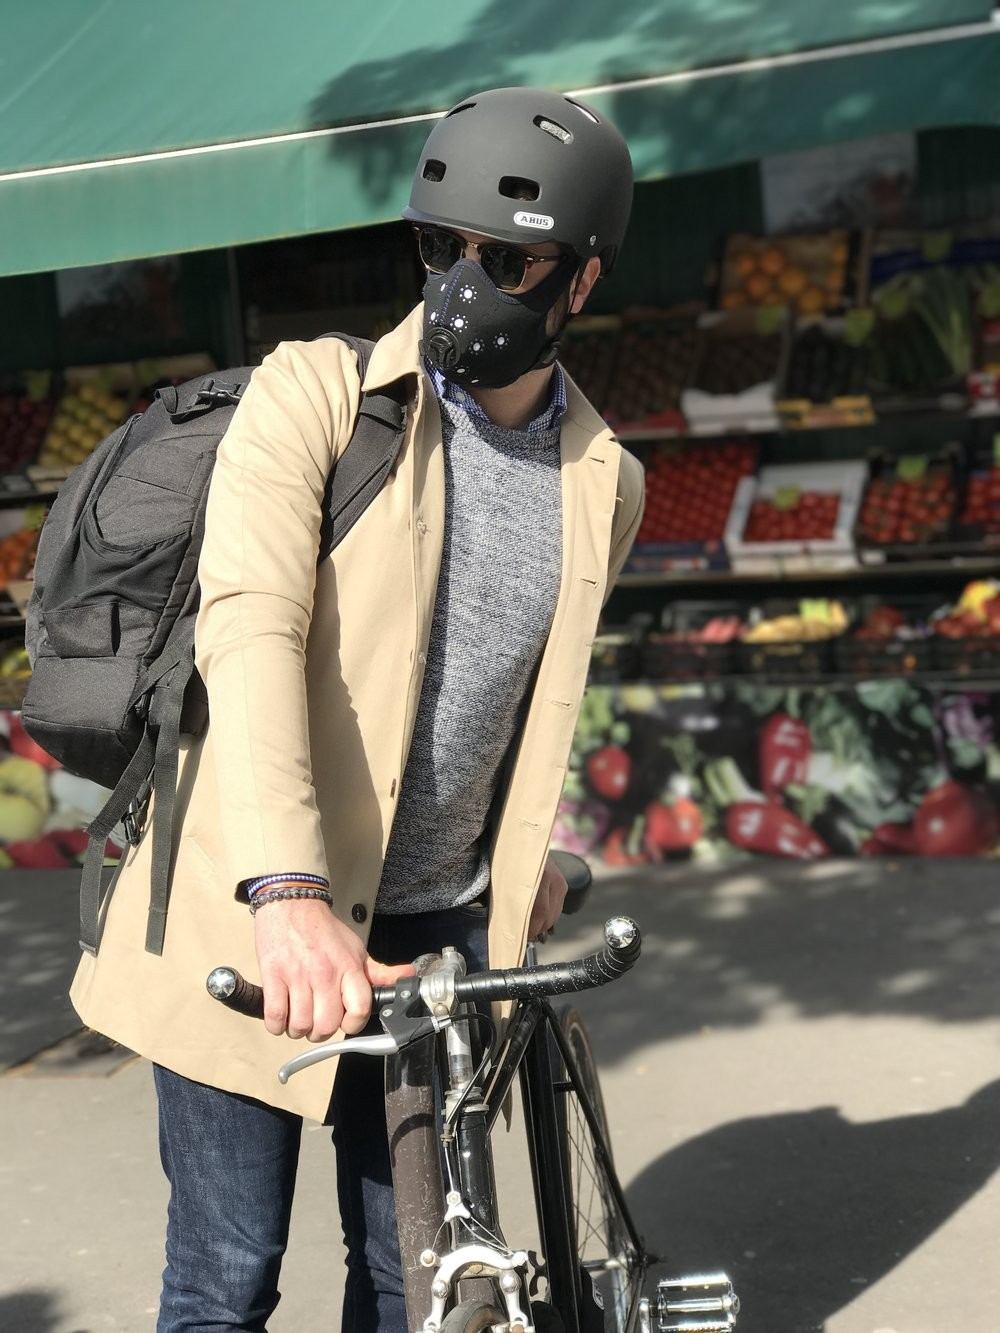 Enfin un masque anti-pollution efficace pour les cyclistes ! By DETOURS                     R-PUR-2-tt-width-1000-height-1333-lazyload-0-fill-0-crop-0-bgcolor-eeeeee